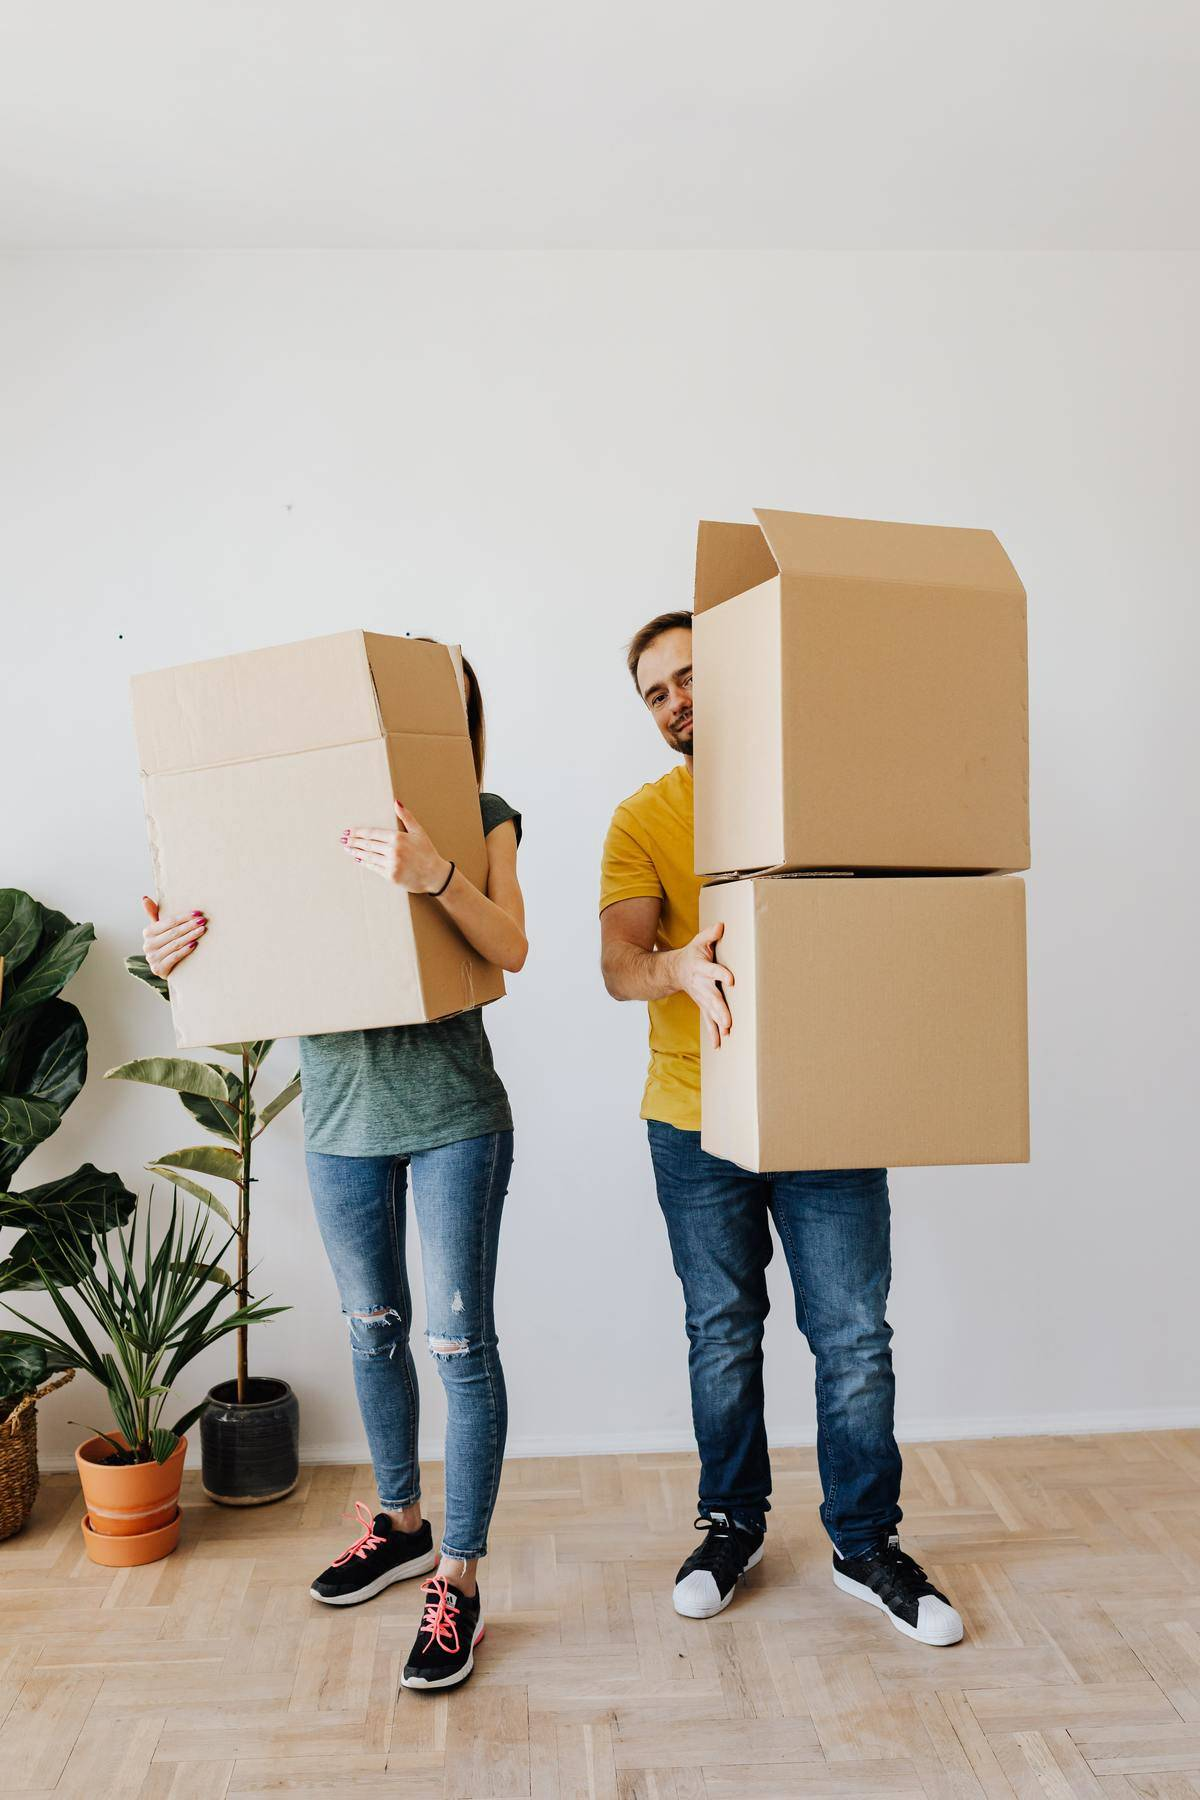 Man and woman look at the camera jokingly as they hold boxes and move into their new home